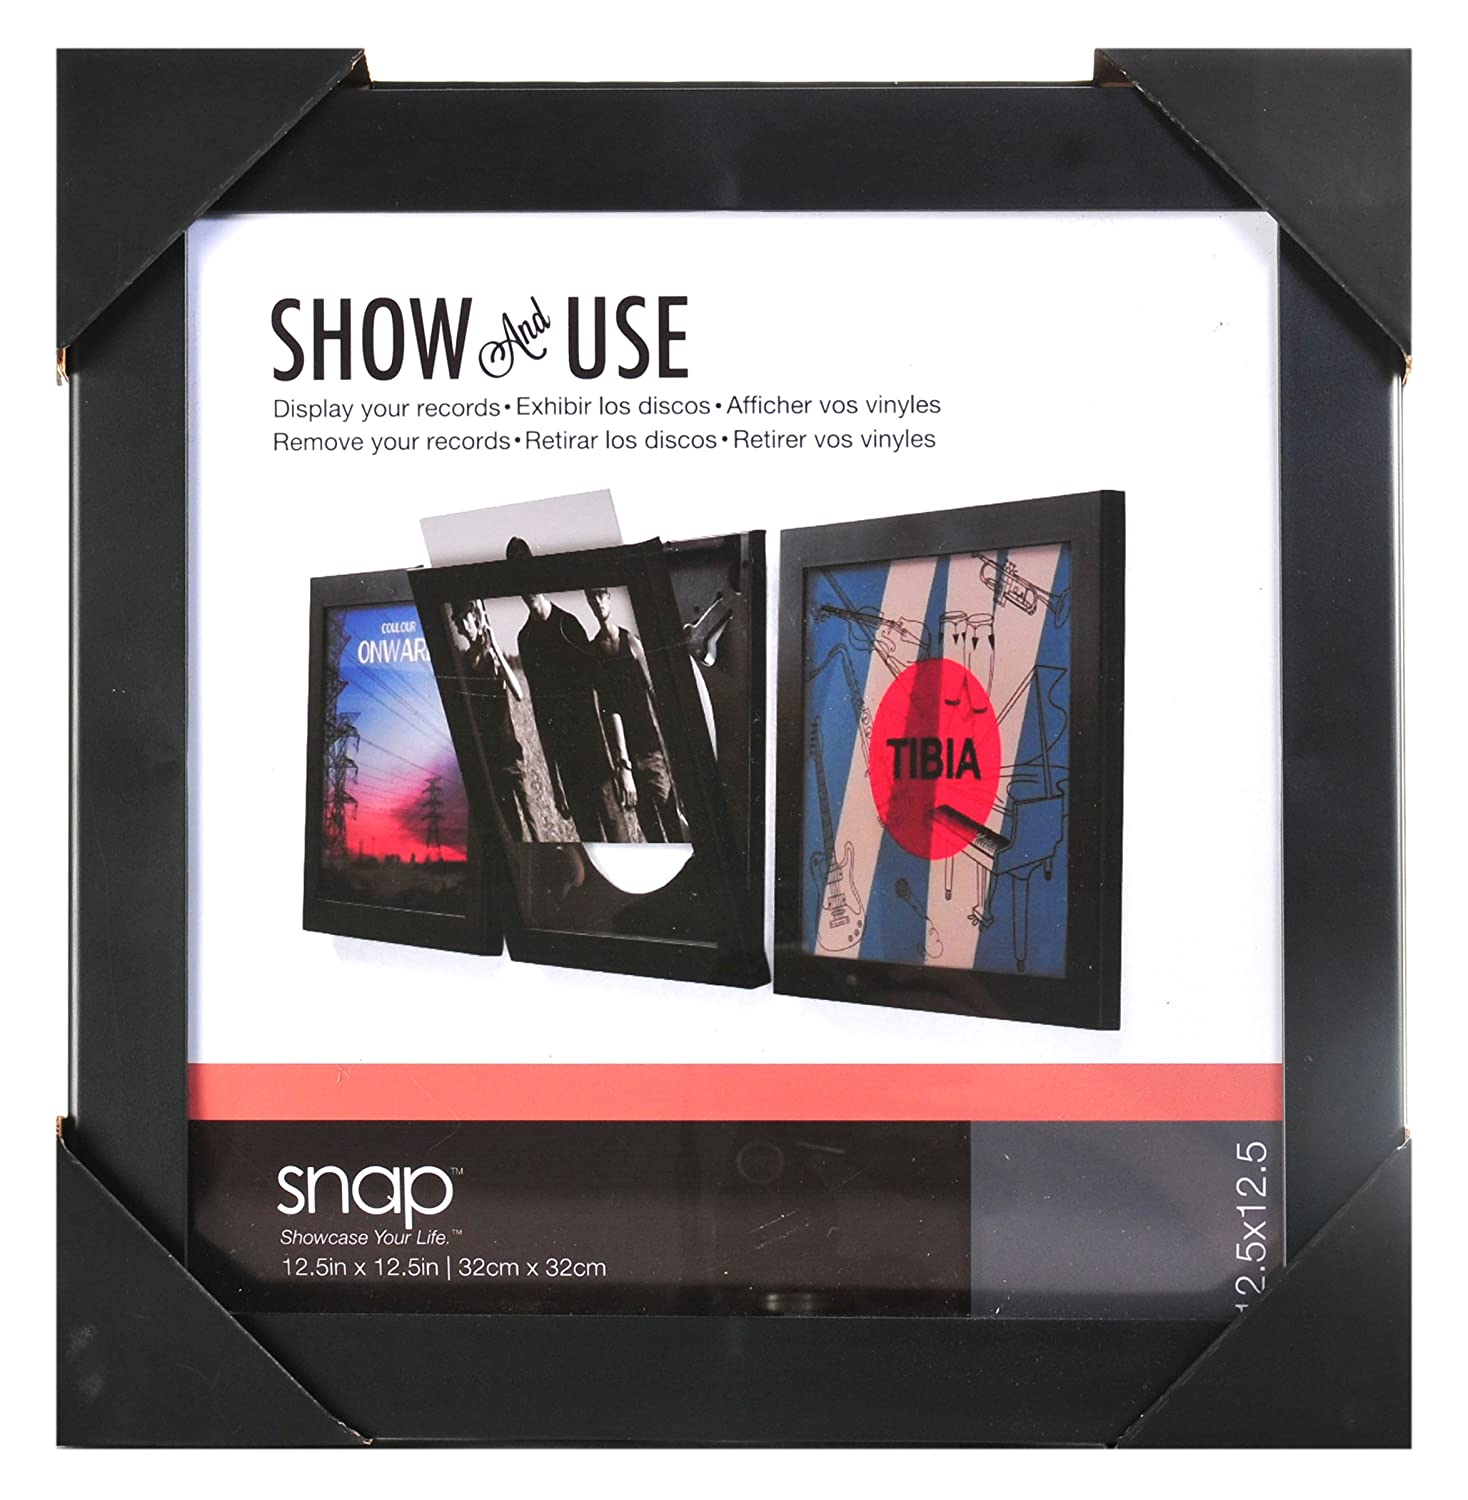 Snap Show and Use Vinyl Record Frame 38555449753 | eBay